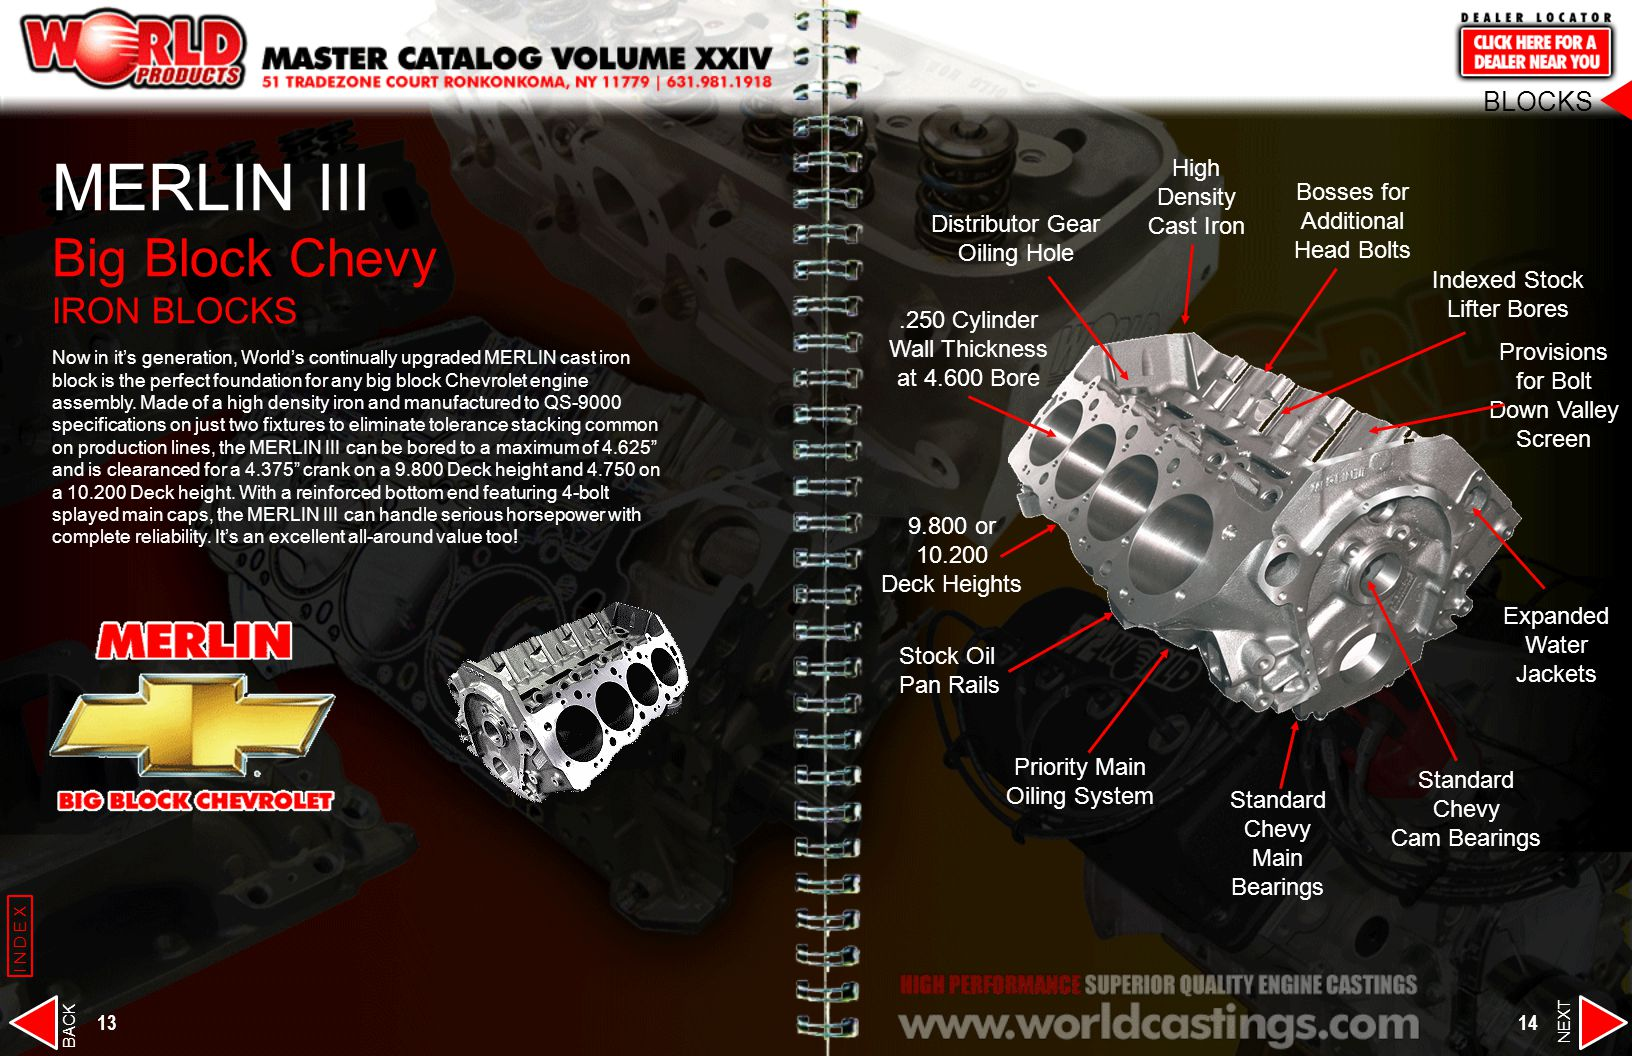 MERLIN III Big Block Chevy IRON BLOCKS Now in its generation, Worlds continually upgraded MERLIN cast iron block is the perfect foundation for any big